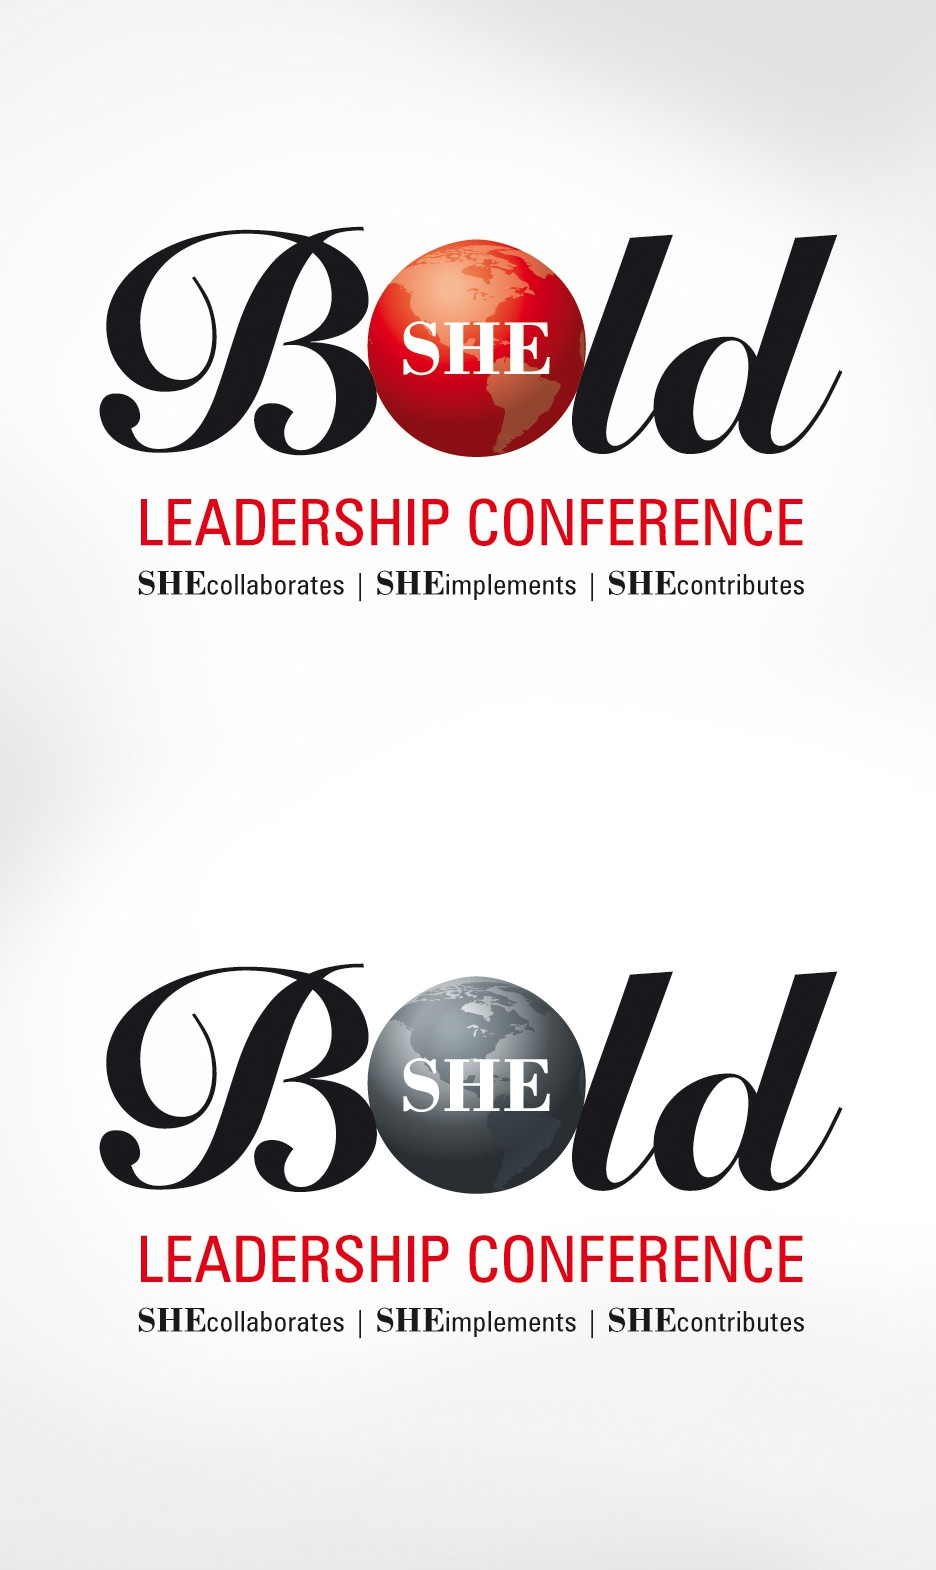 Create a conference logo to attract HIGH-END WOMEN LEADERS